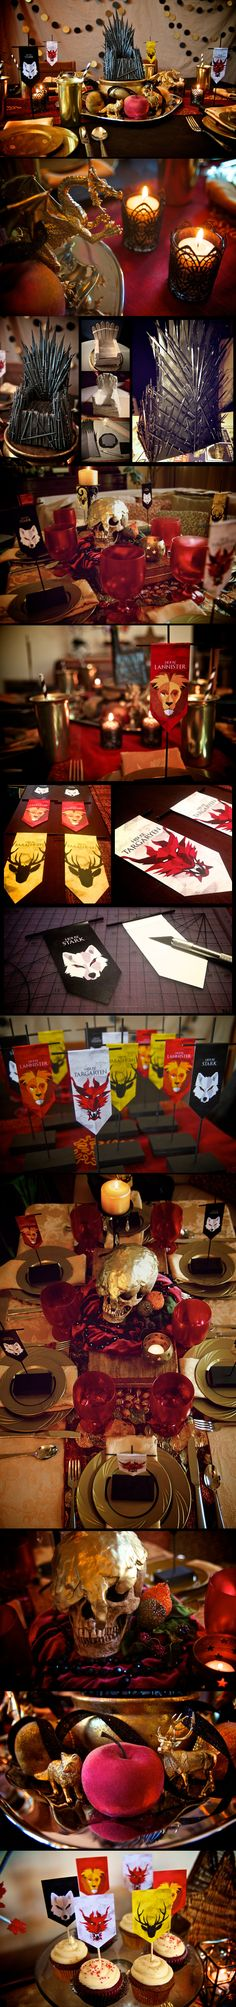 """Here is a handsome Game of Thrones Gathering table.  Some great ideas include DIY small banners, Viserys' """"Golden Crown"""" centerpiece and a  a mini-Iron Throne, fashioned from (super cheap!) plastic sword toothpicks, popsicle sticks (base layer), air-dry & sculpey clays, craft glue, and black & silver spray paint for finishing."""